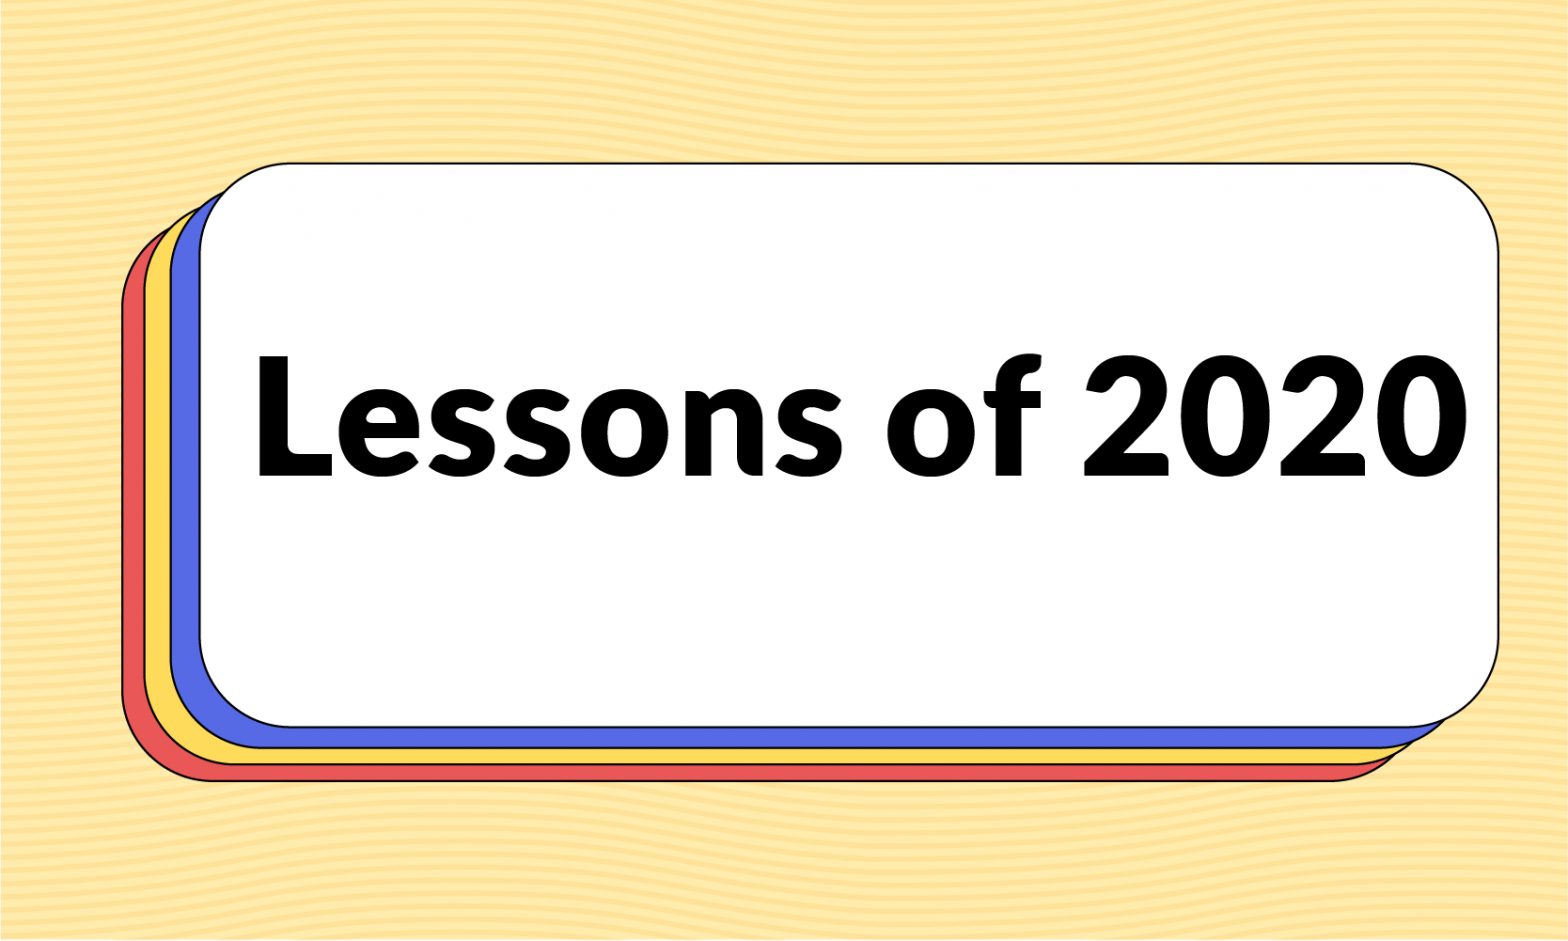 Lessons of 2020